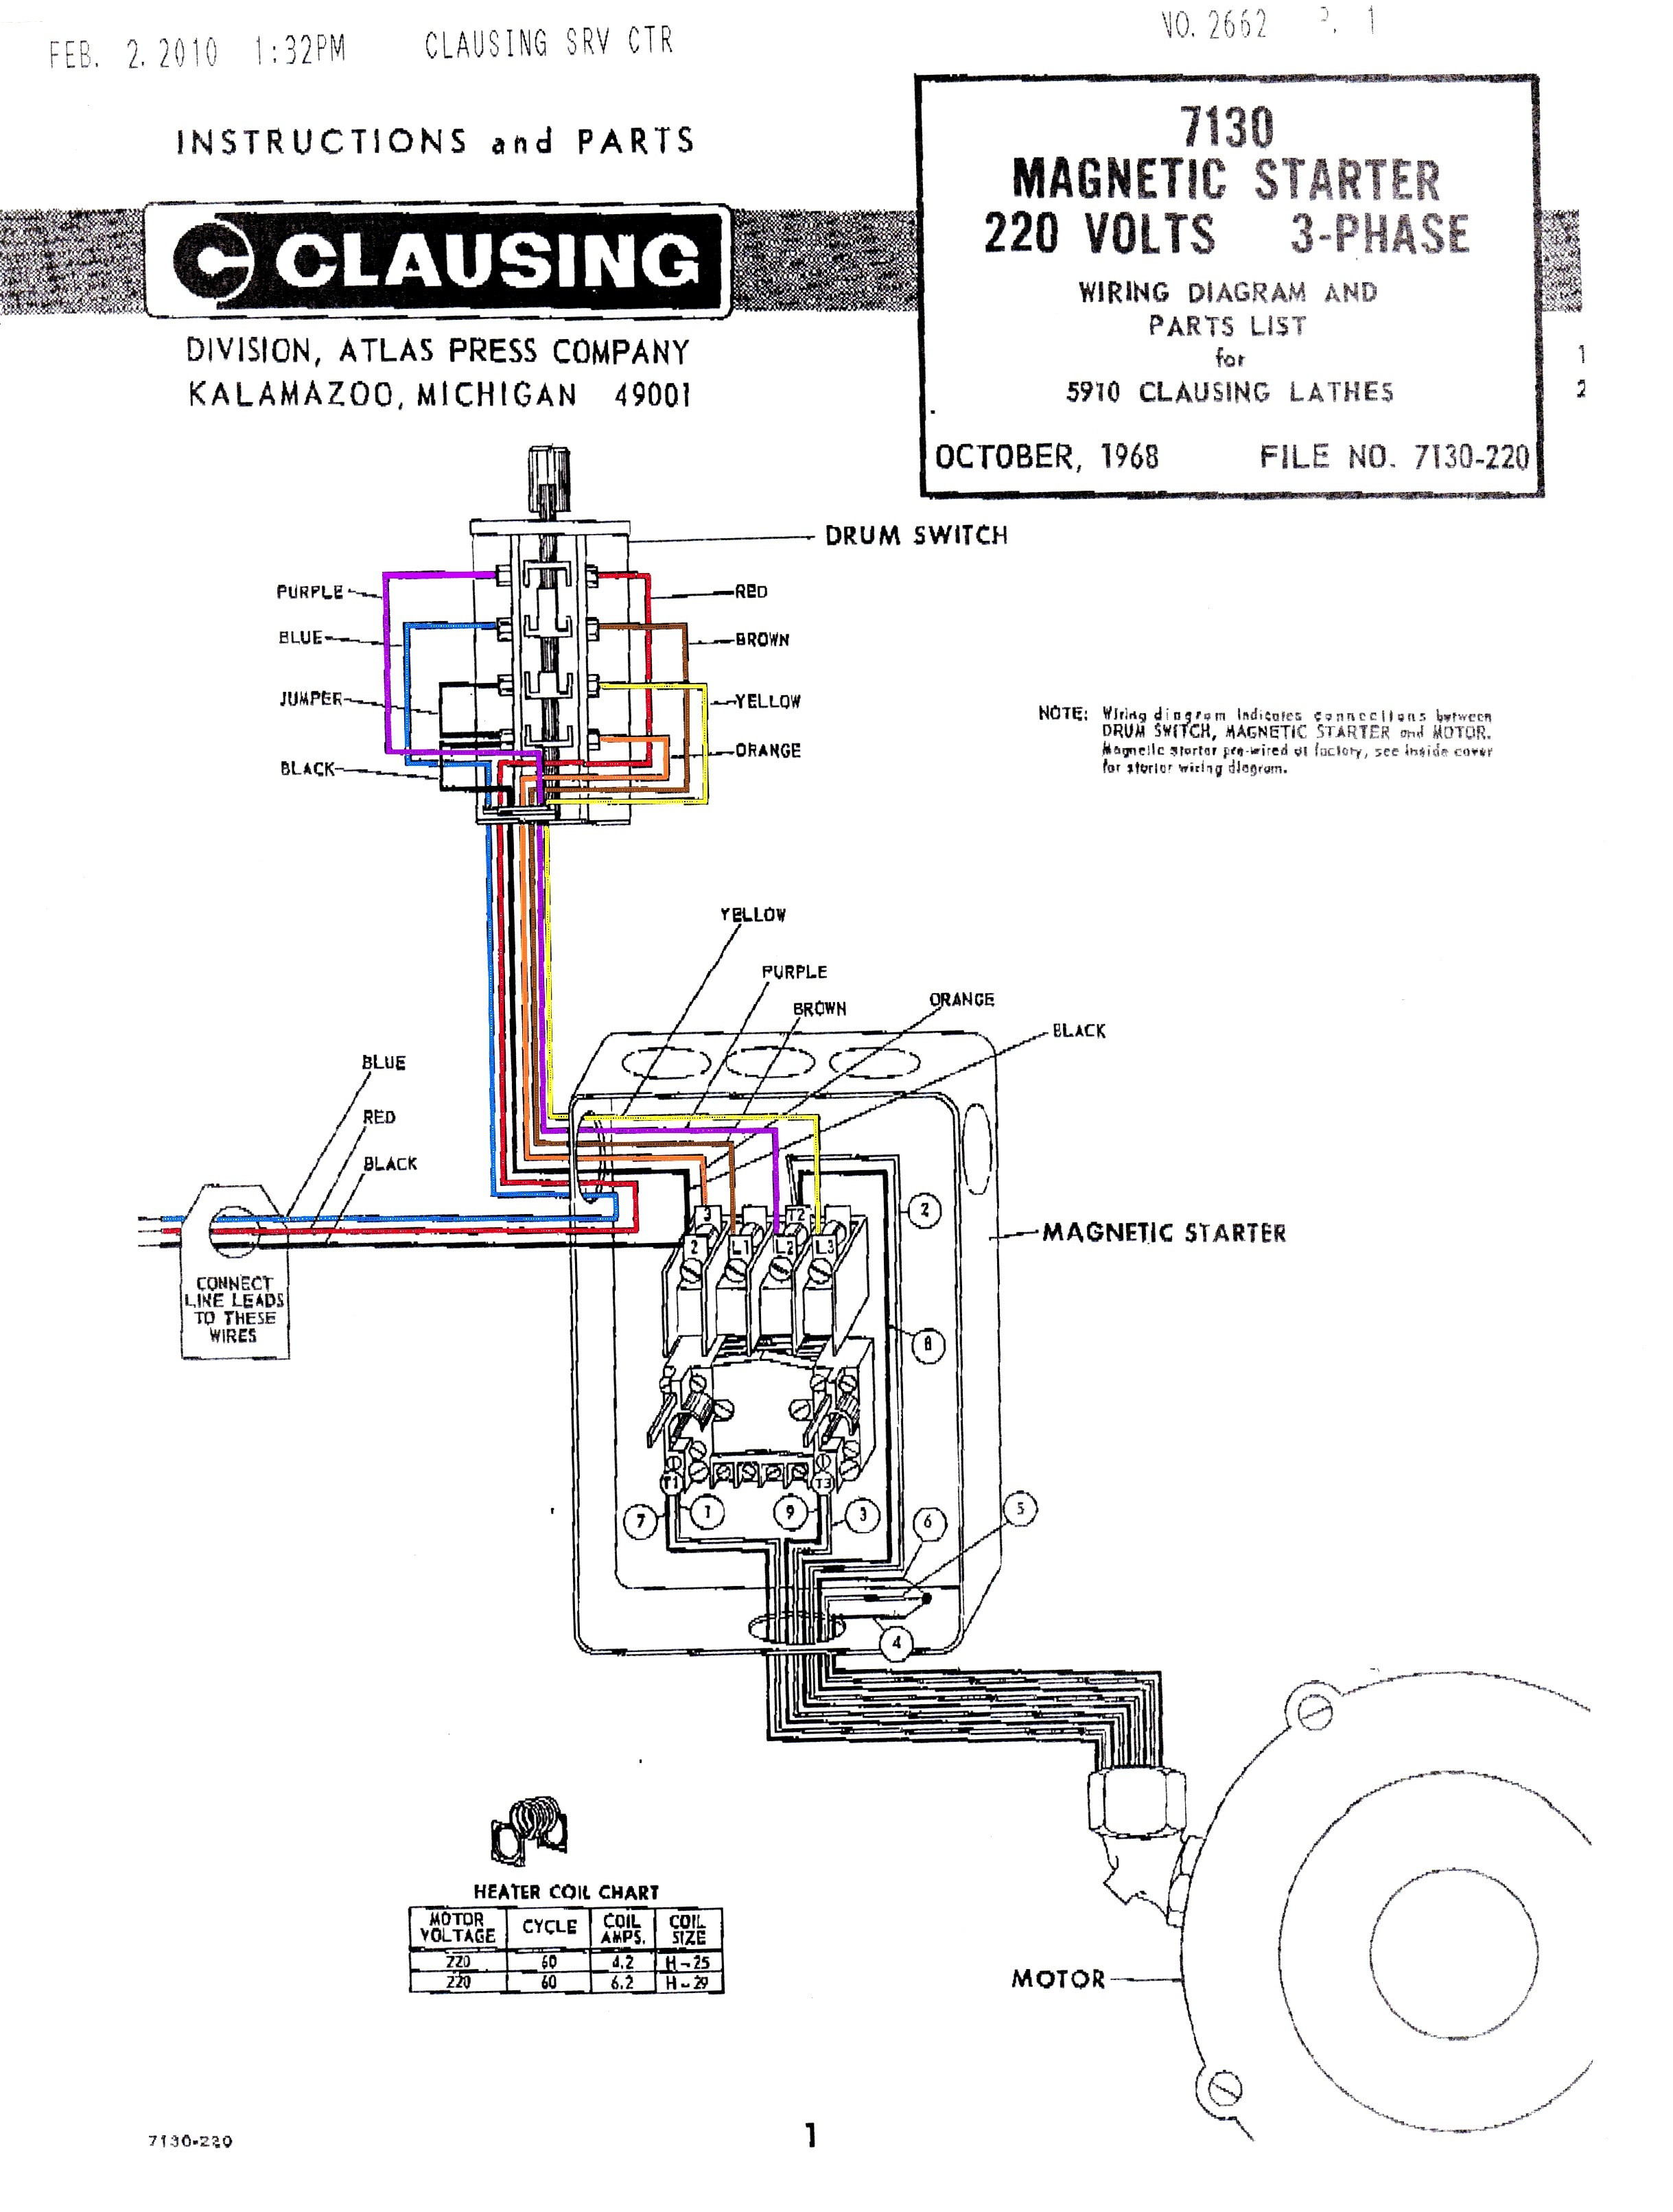 hight resolution of motor wiring diagrams free download wiring diagram schematic electric motor wiring diagram free download wiring diagram schematic